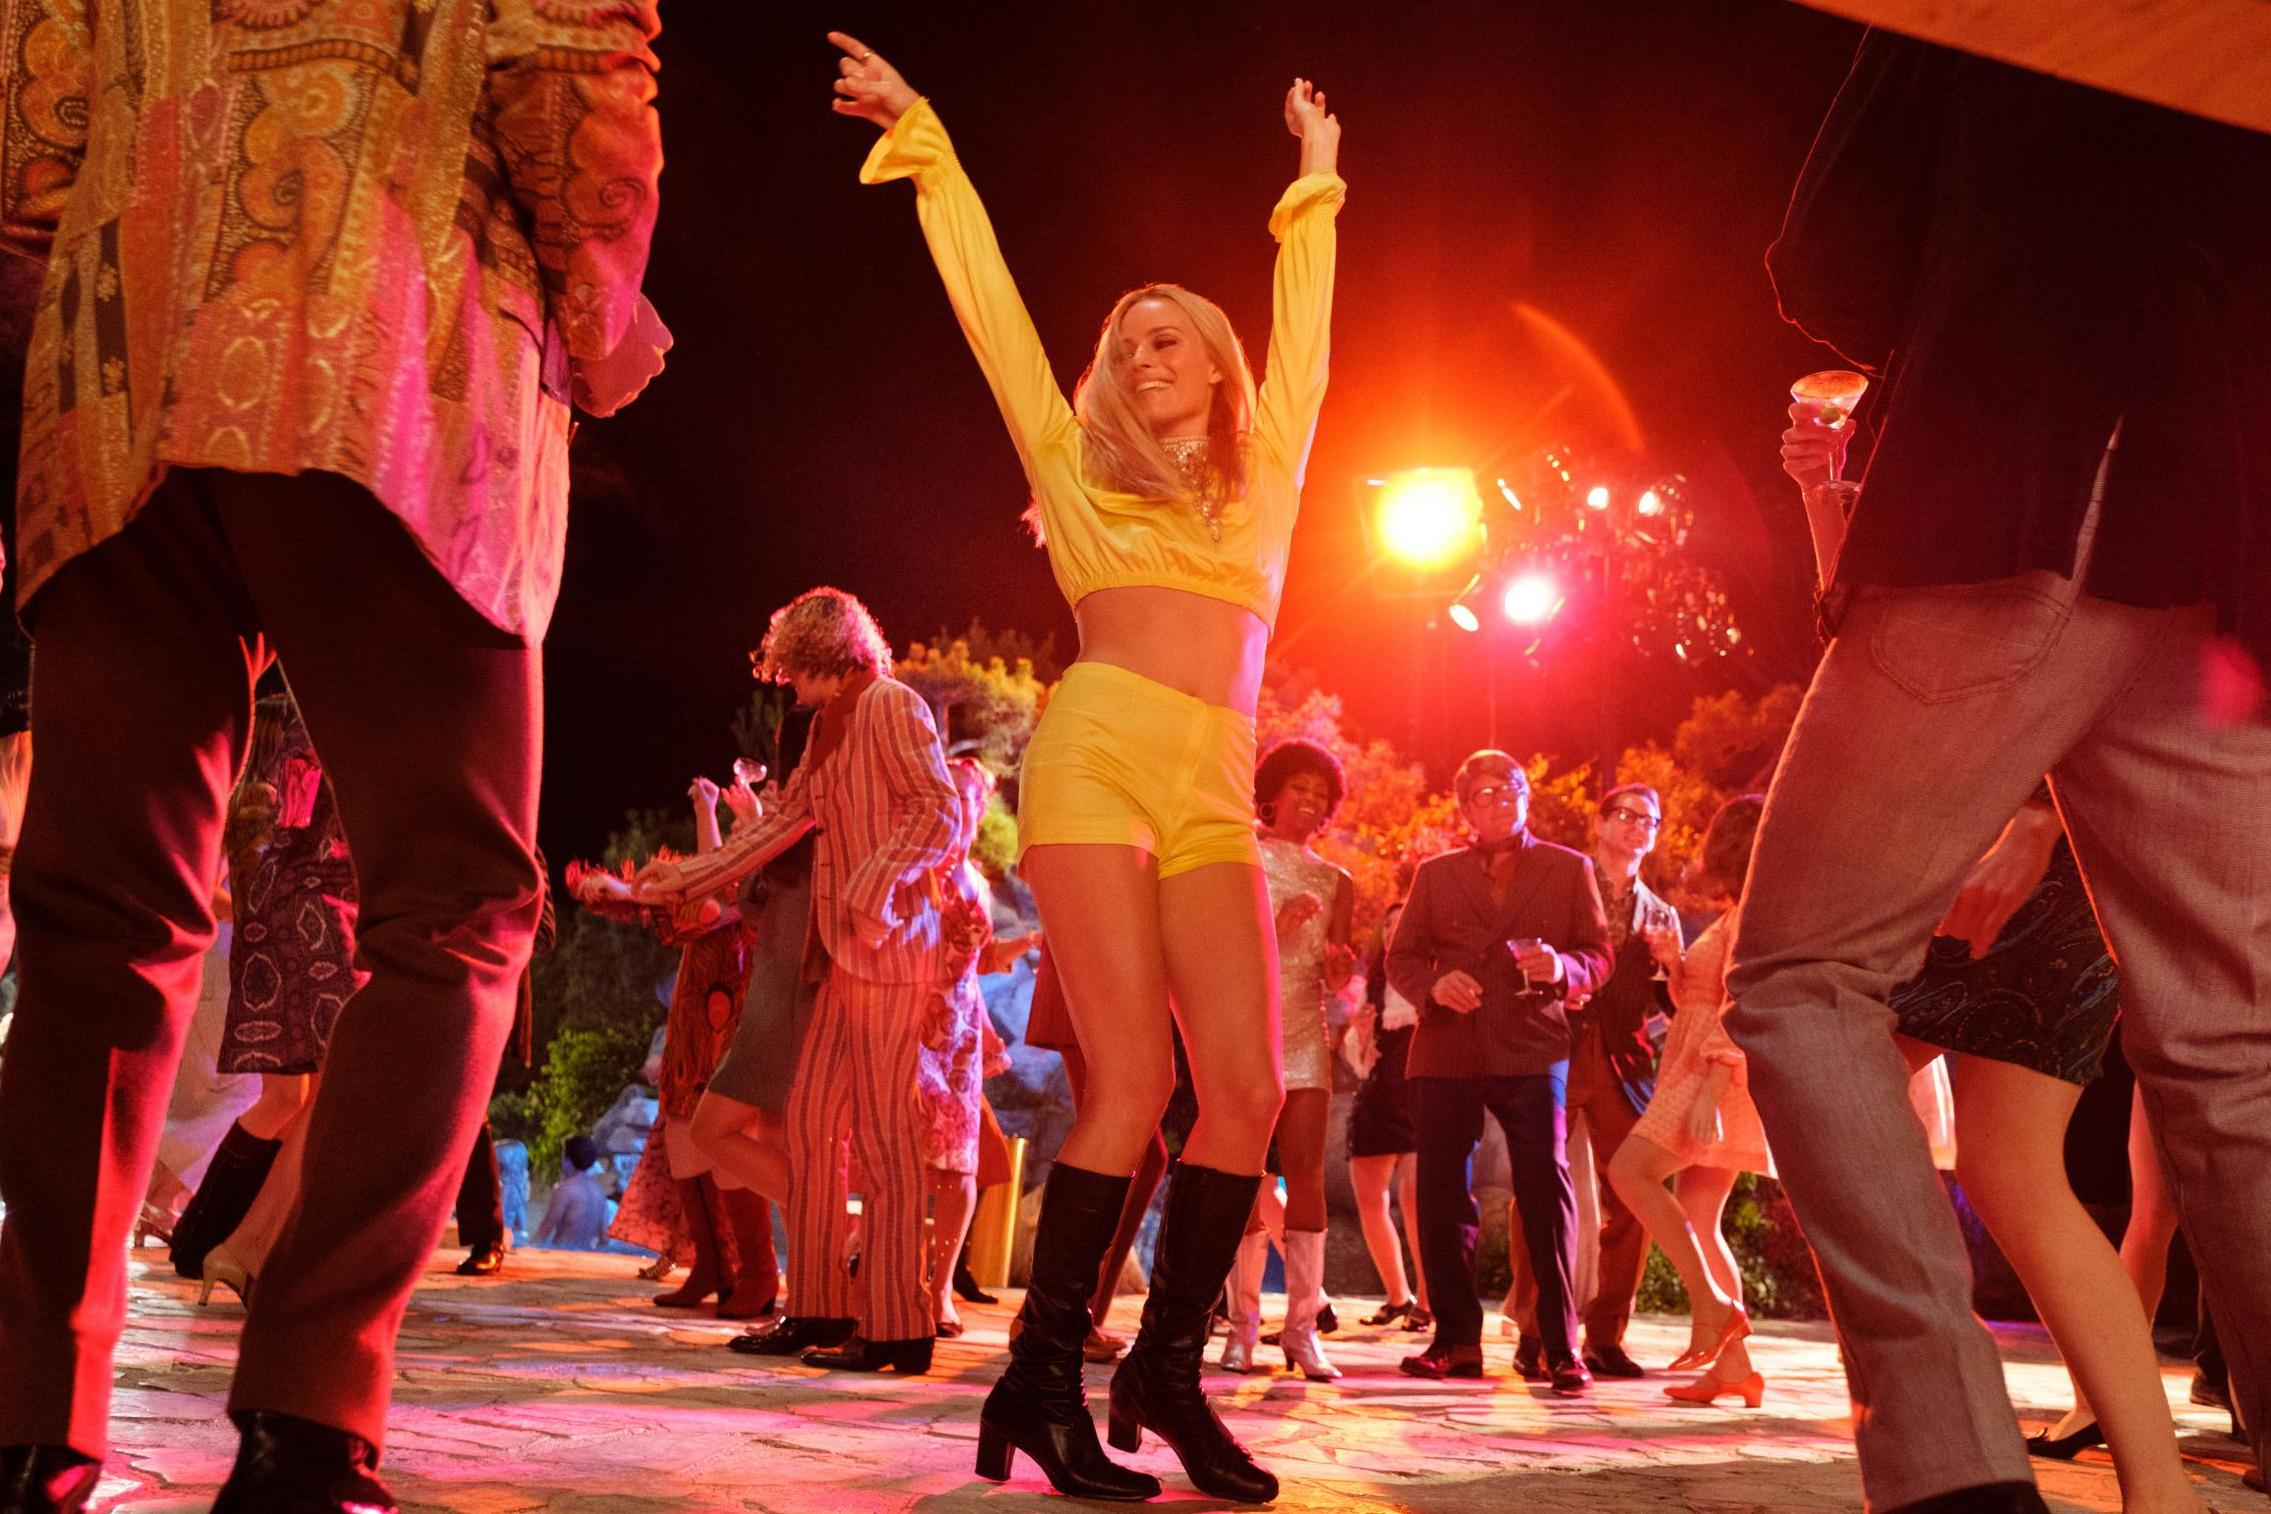 Quentin Tarantino's male gaze in Once Upon a Time in Hollywood isn't…